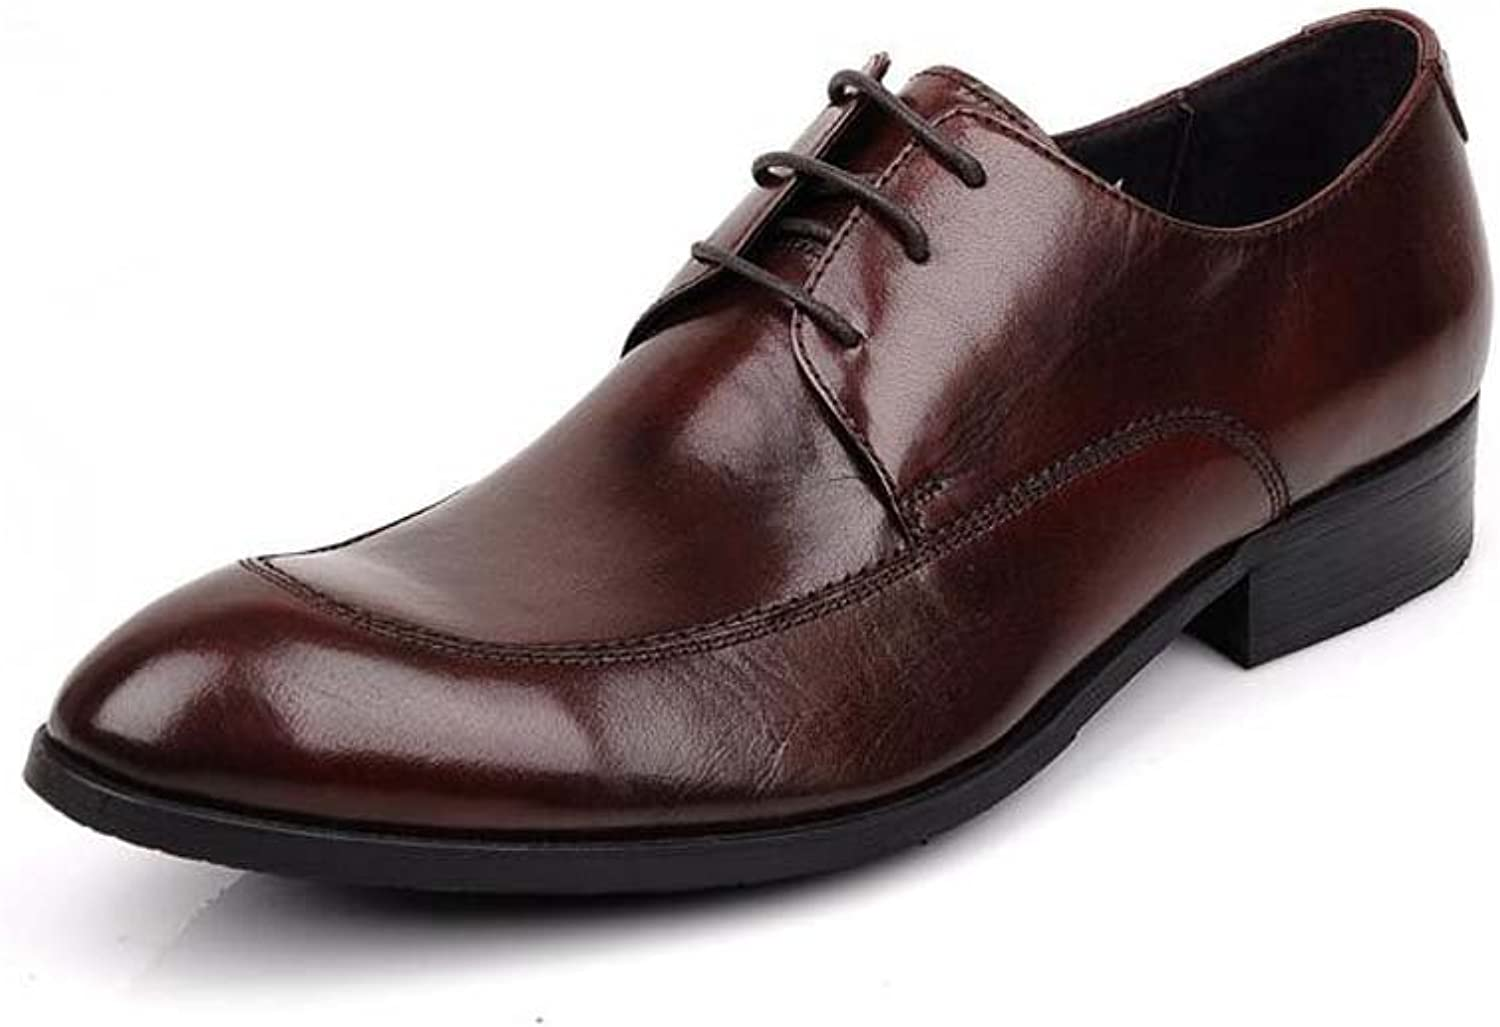 Men's shoes Dress shoes Work shoes Wedding shoes Atmosphere Fashion New